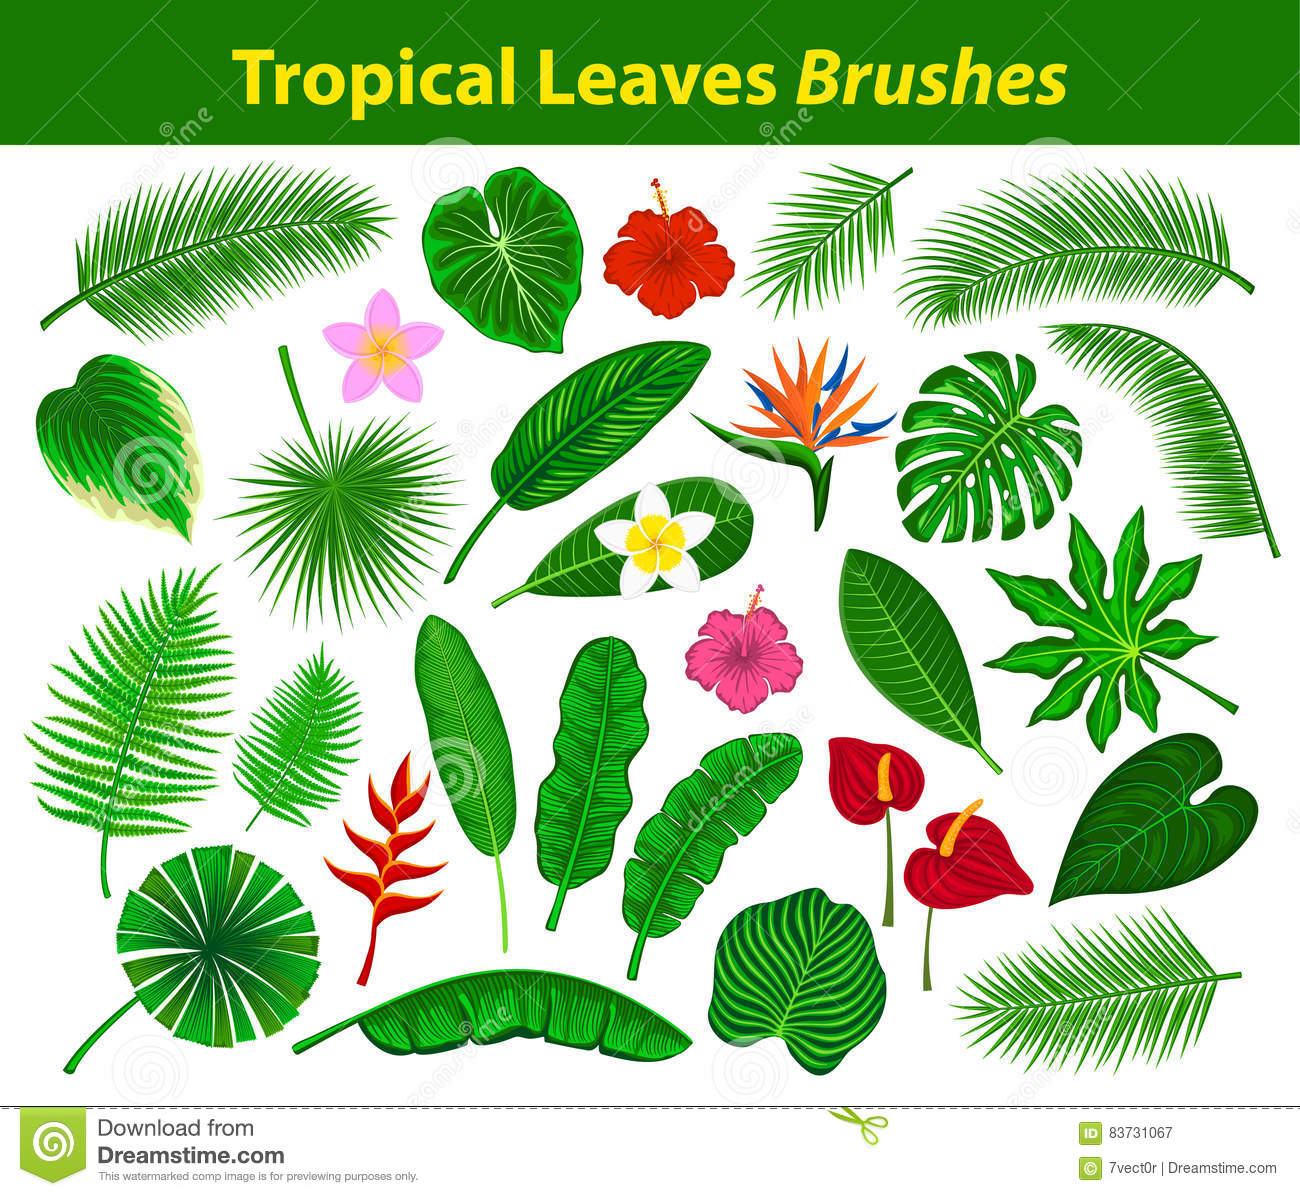 Tropical Exotic Leaves Collection As Brushes With Flowers Stock Vector Illustration Of Fern Collection 83731067 About 1% of these are aquatic plants. dreamstime com